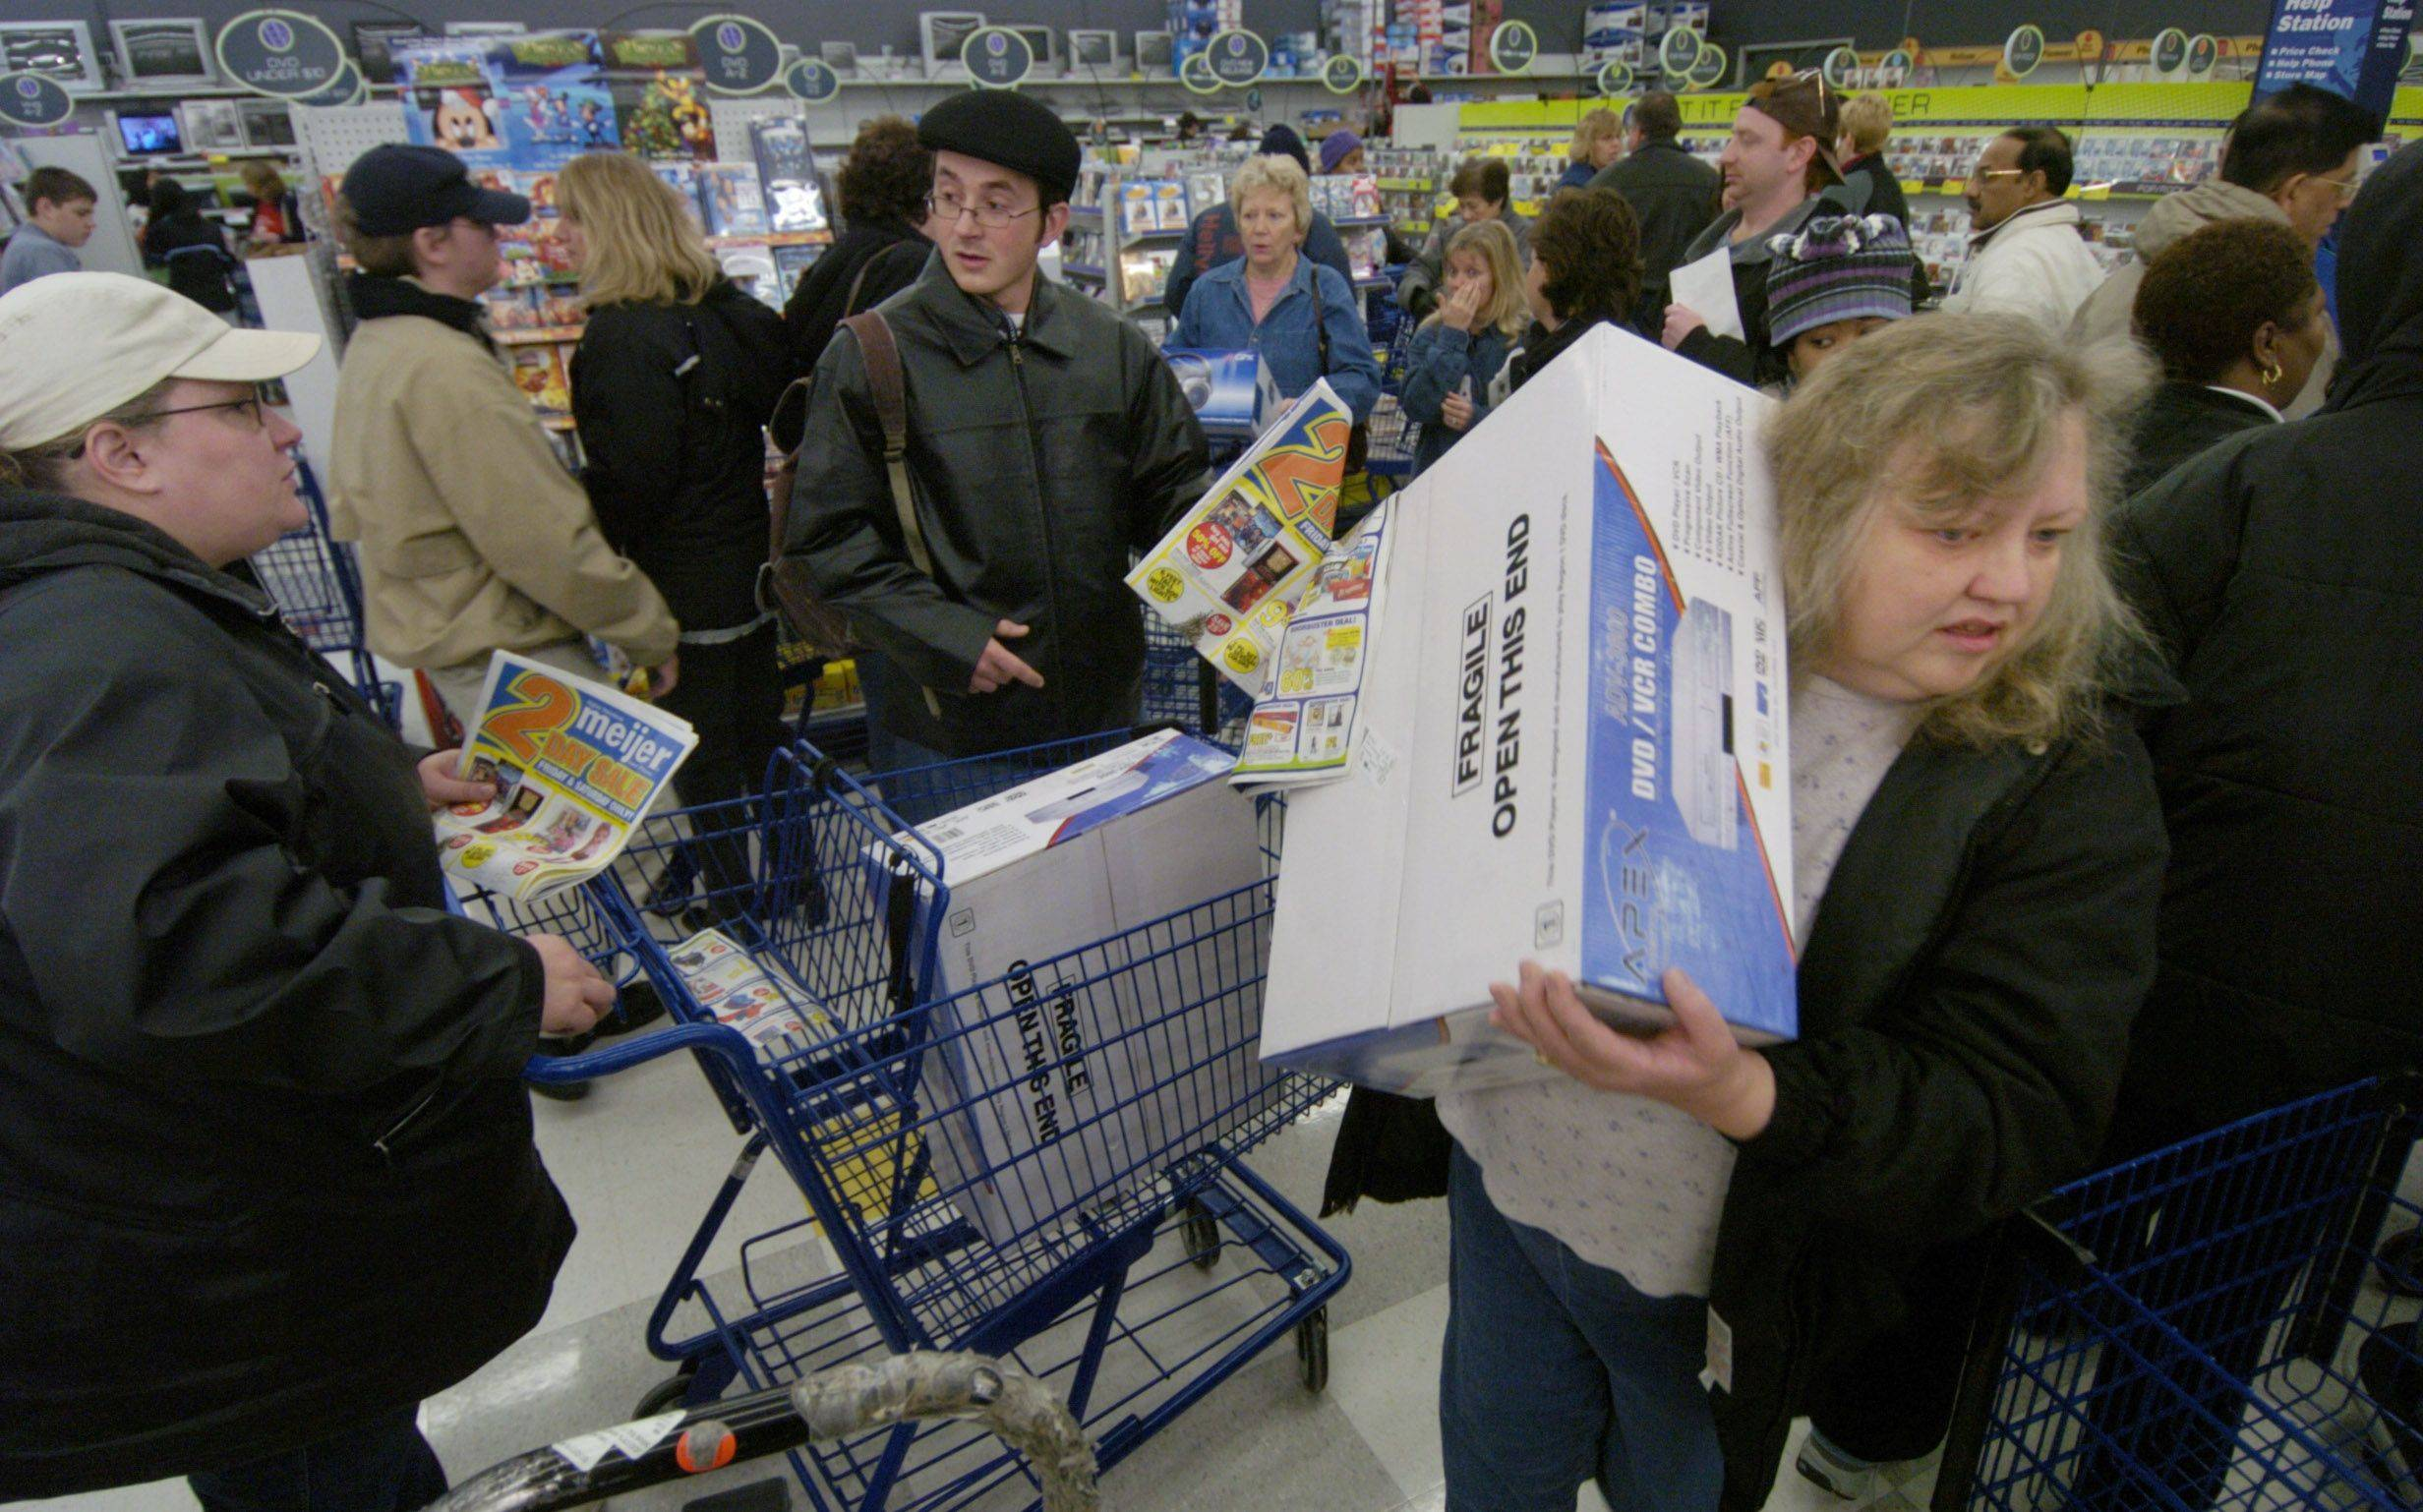 One suggestion for avoiding the crush of last-minute shoppers is to visit a 24-hour store, like Meijer or Wal-Mart, in the middle of the night.